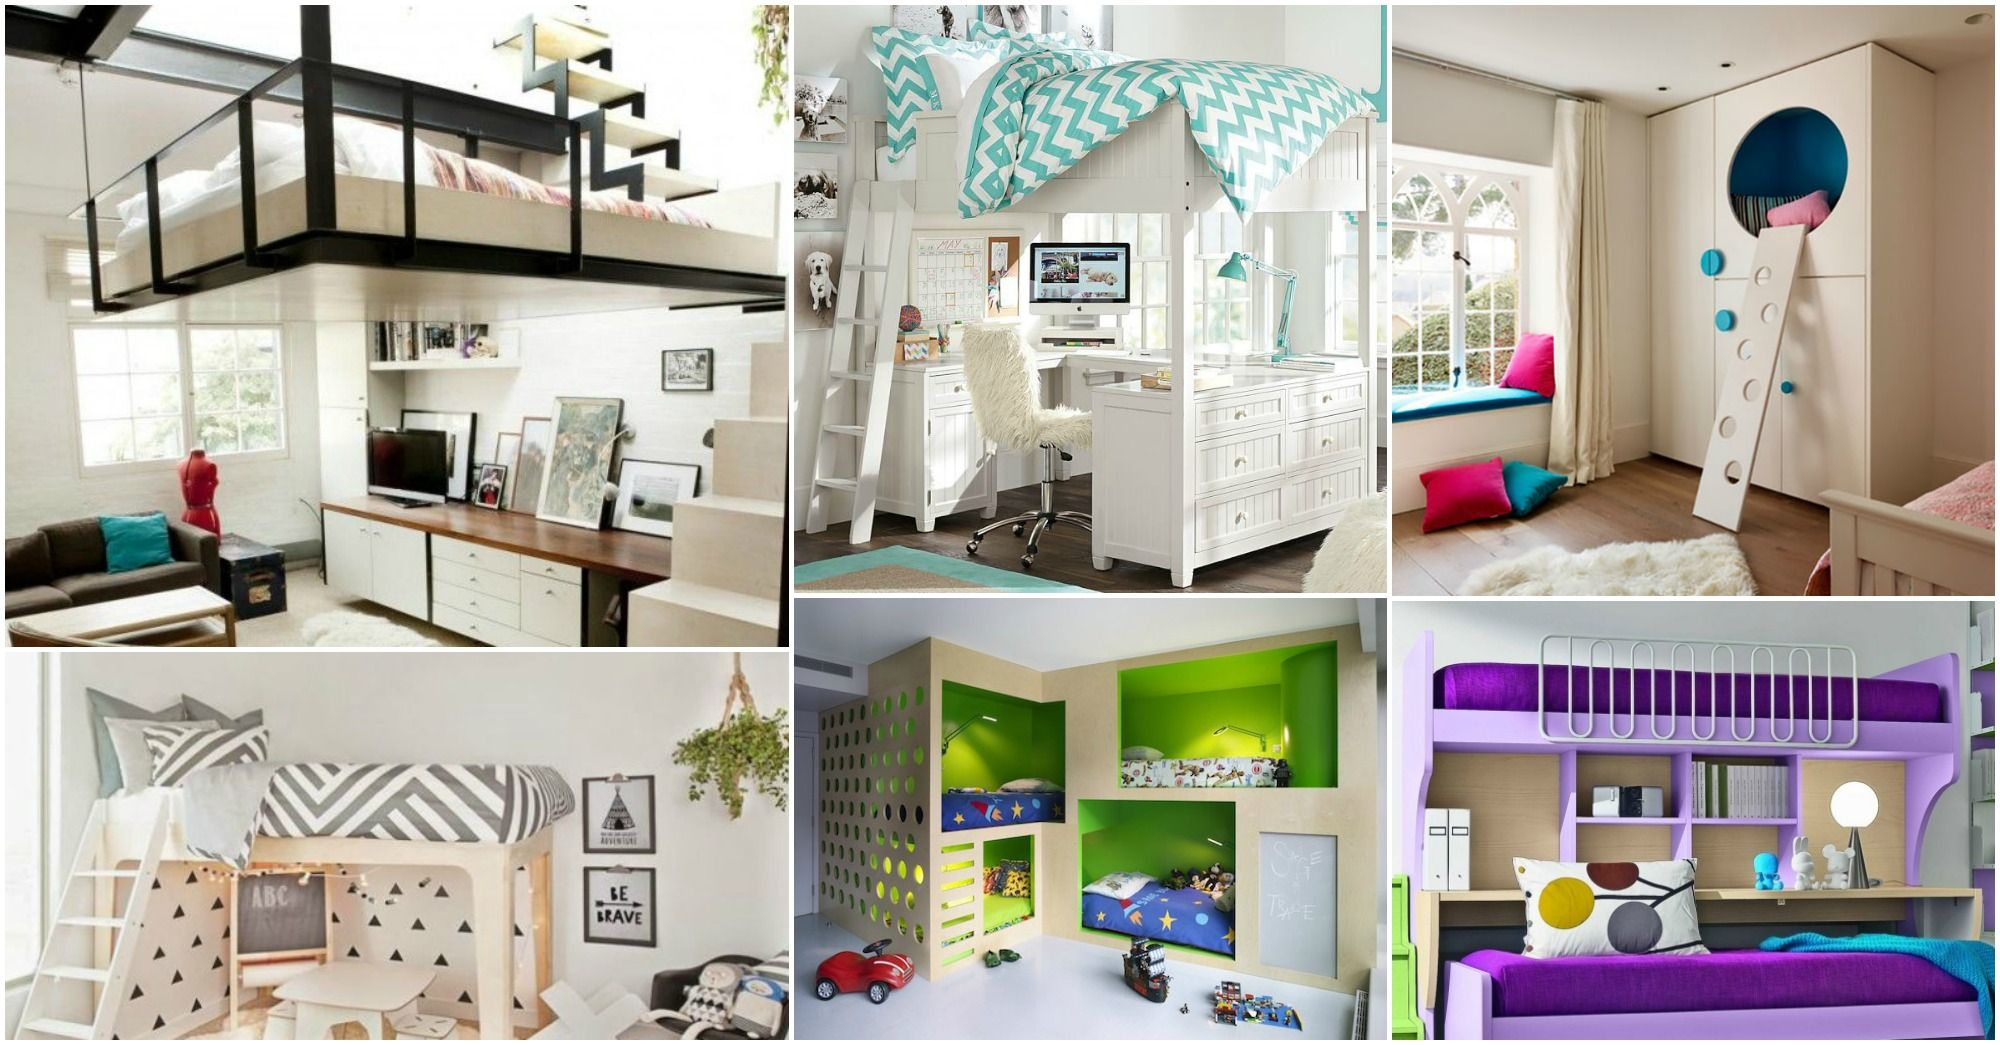 Cool Bunk Beds 16 Cool Loft Beds That Will Amaze You Renovation And